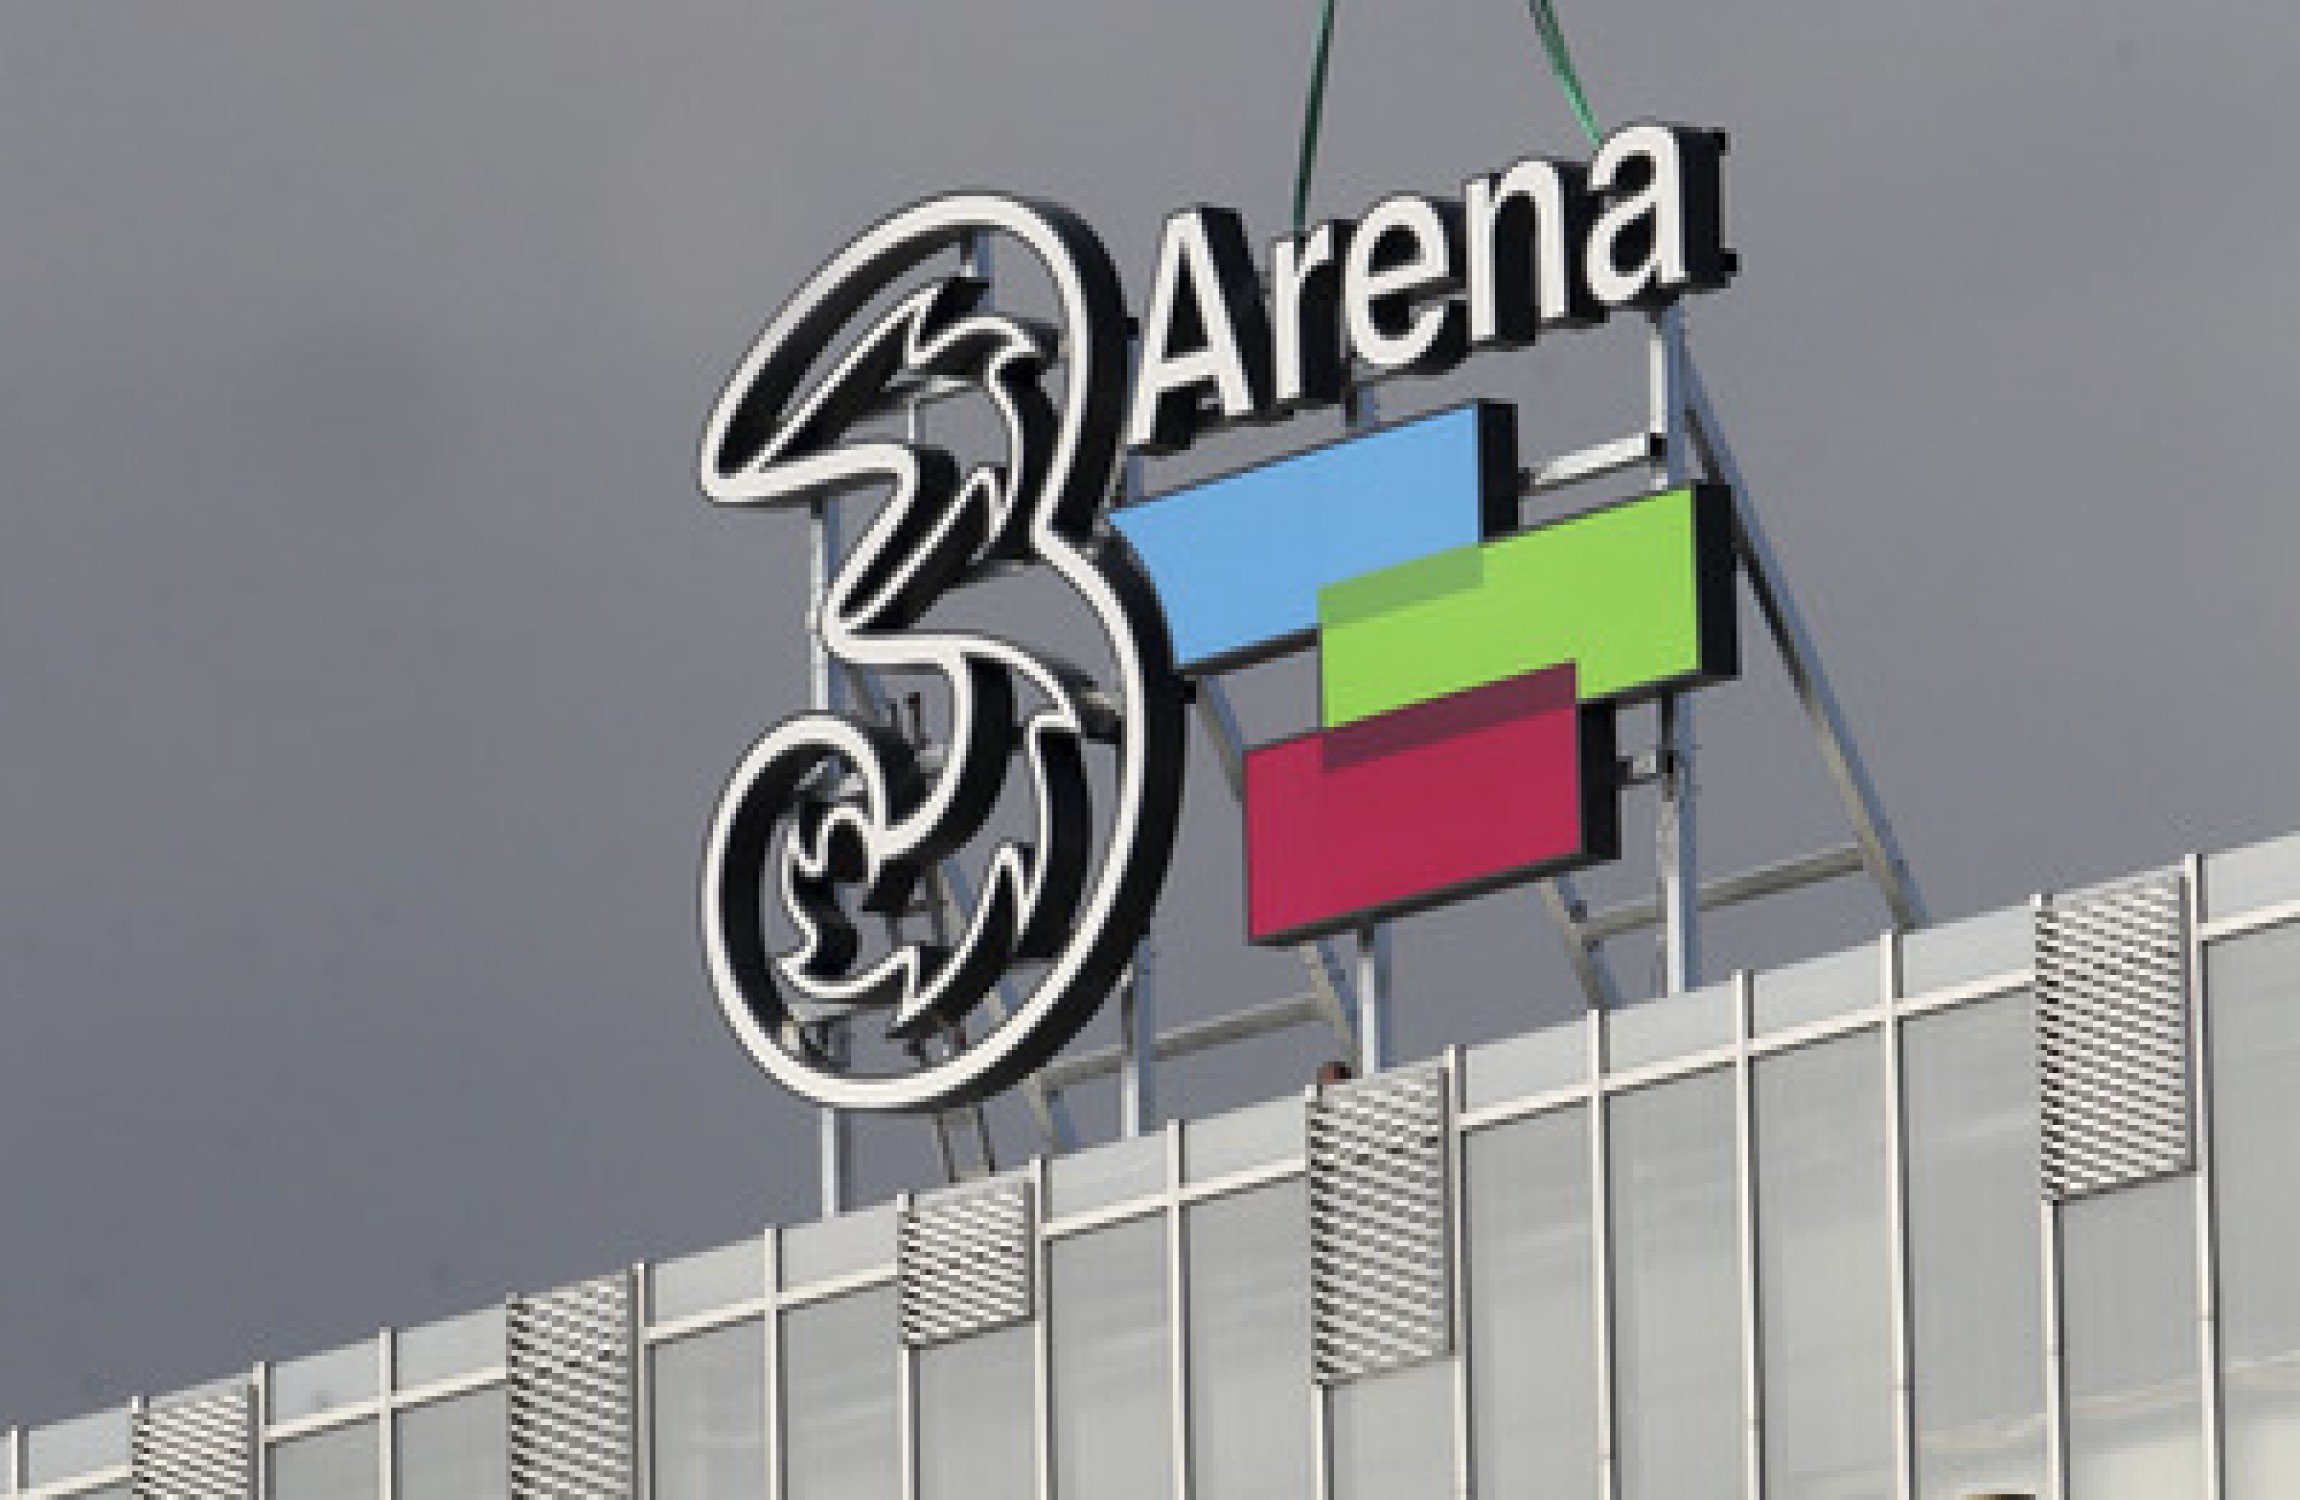 3Arena announce new security policies ahead of Shawn Mendes gig